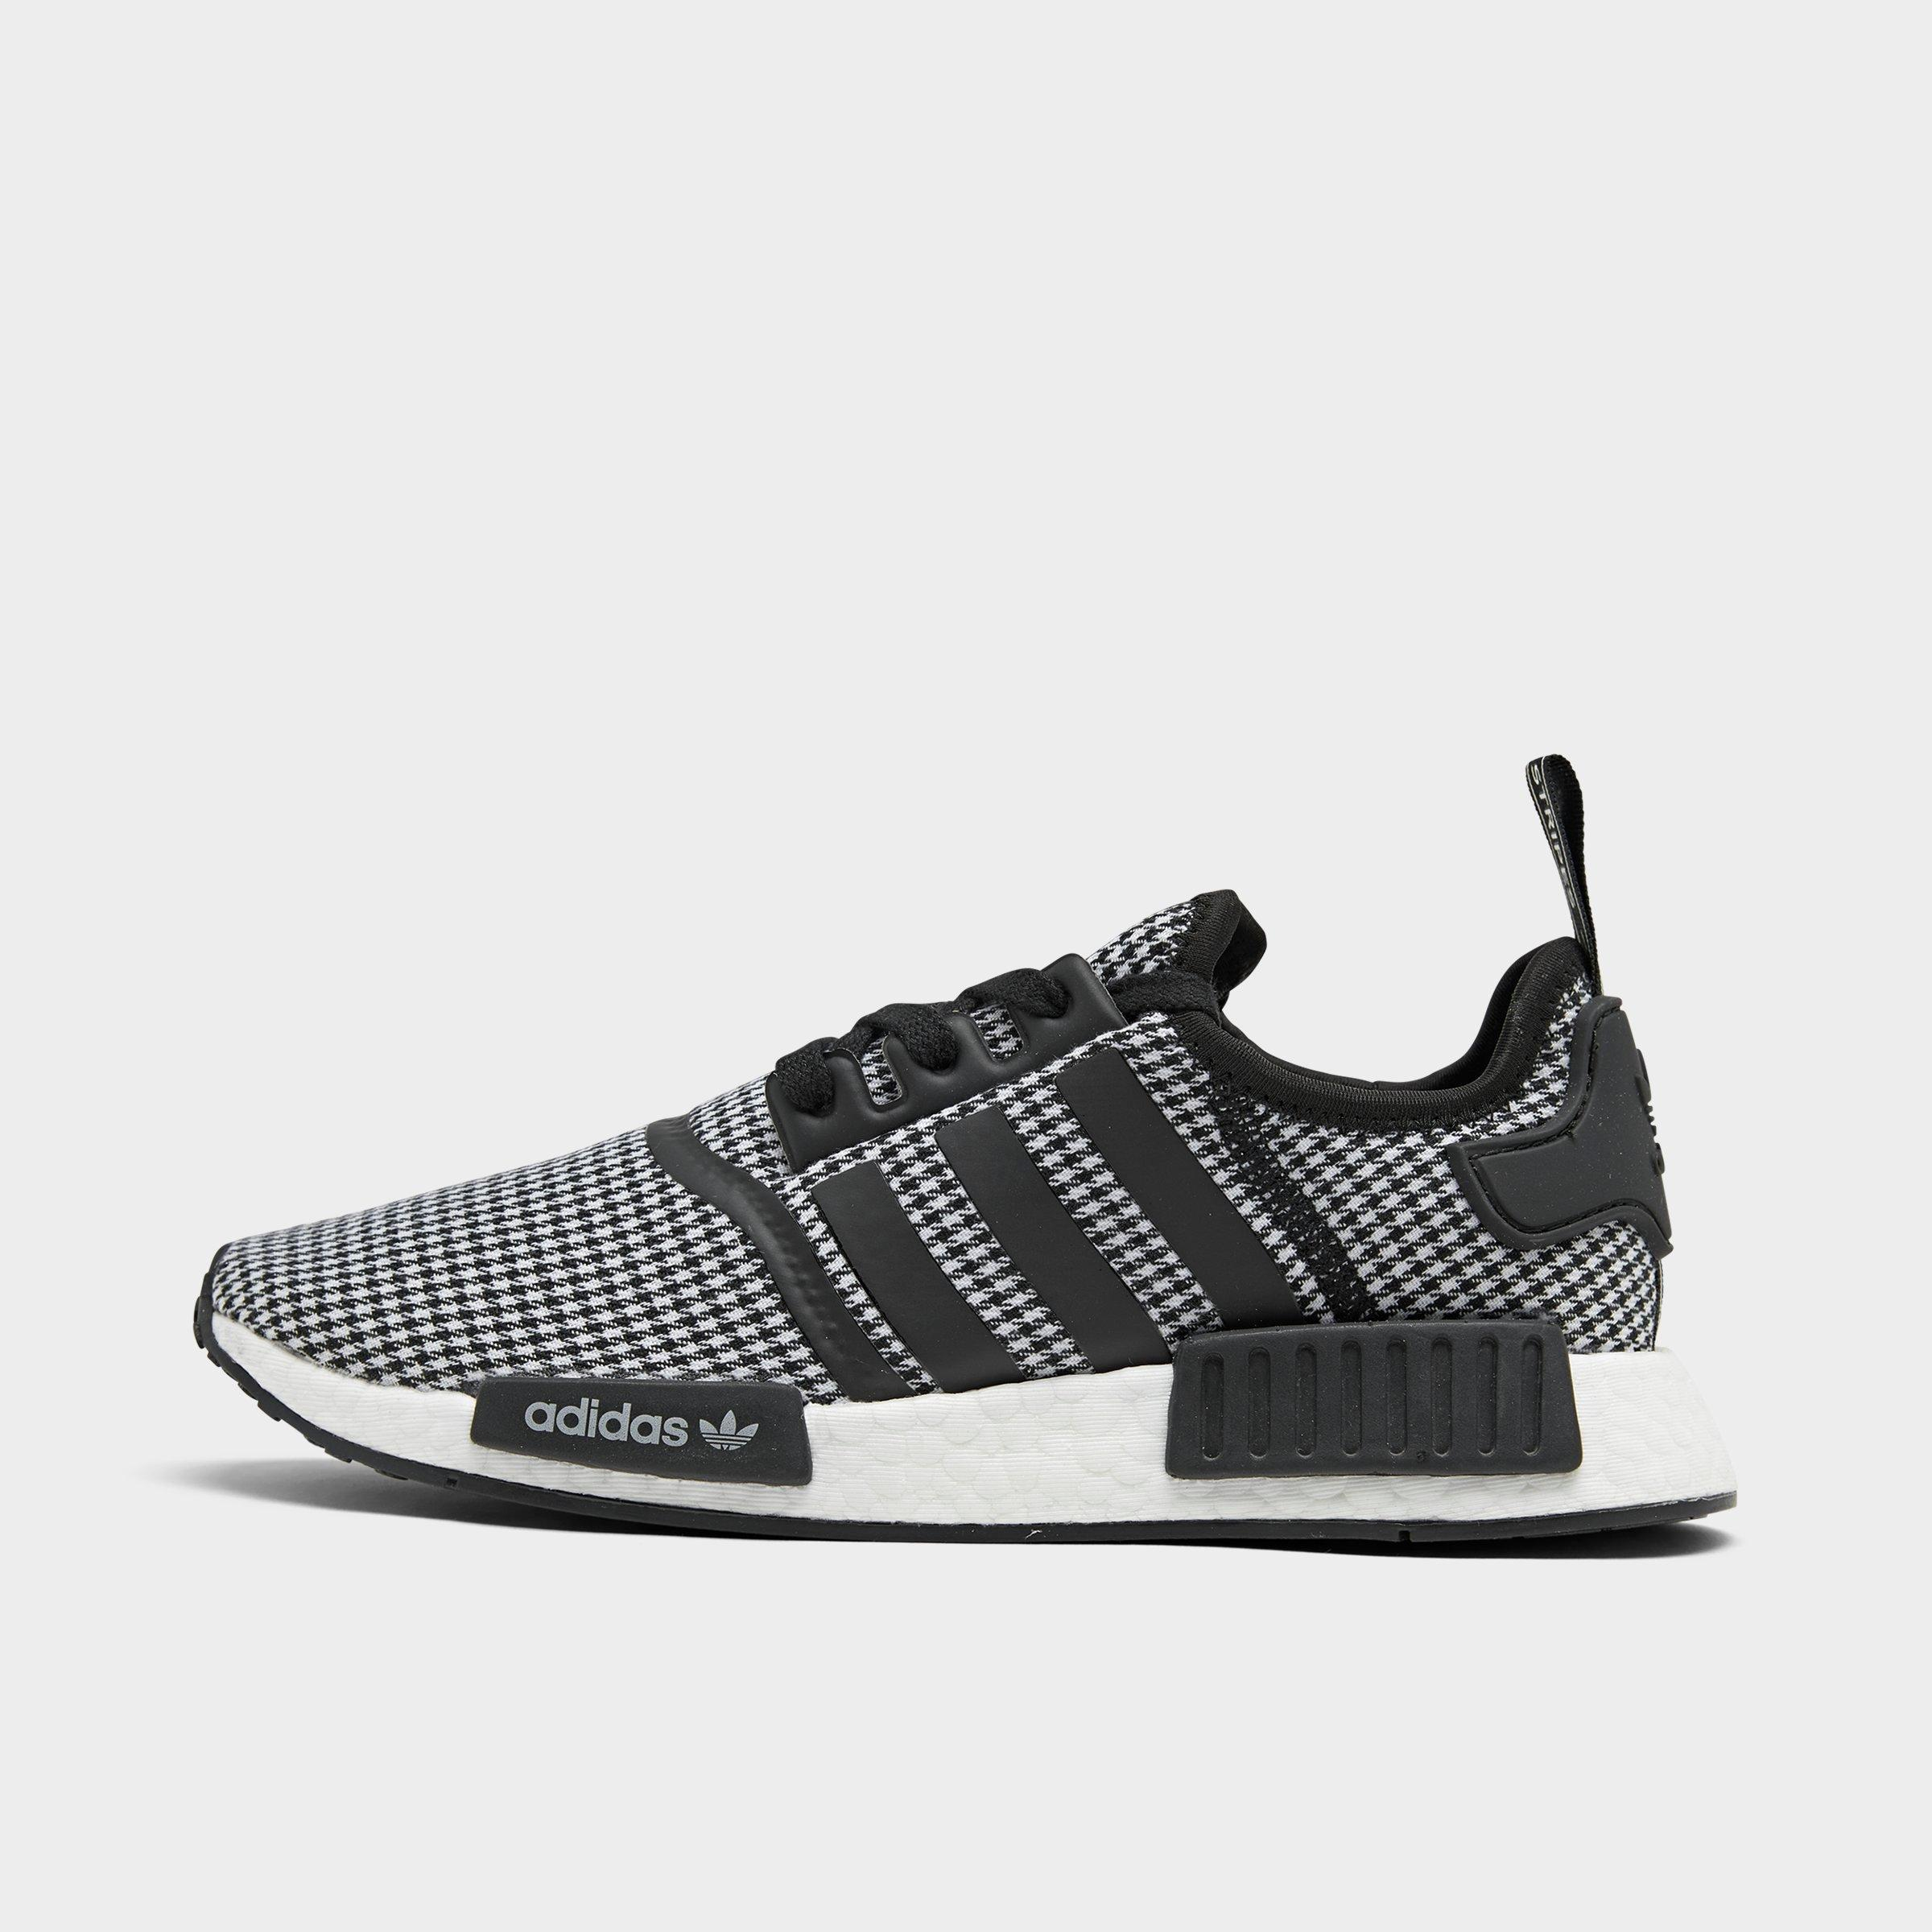 Adidas Nmd Black And White Mens Great Quality Fast Delivery